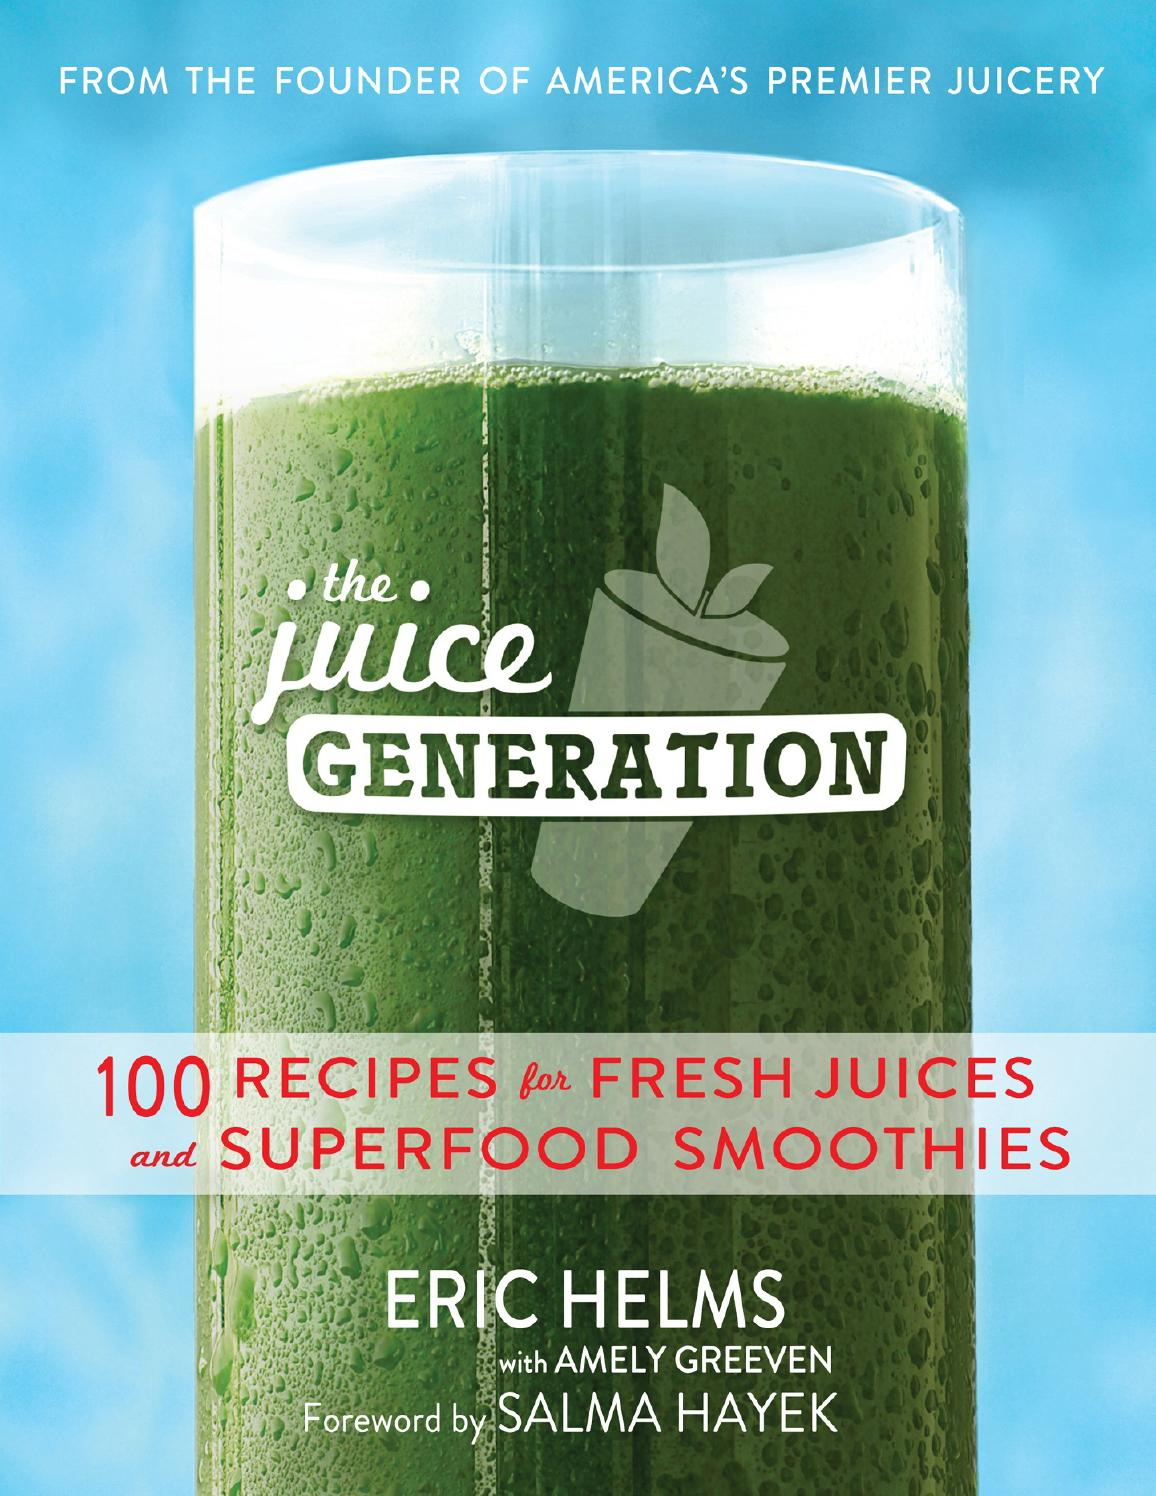 The Juice Generation: 100 Recipes for Fresh Juices and